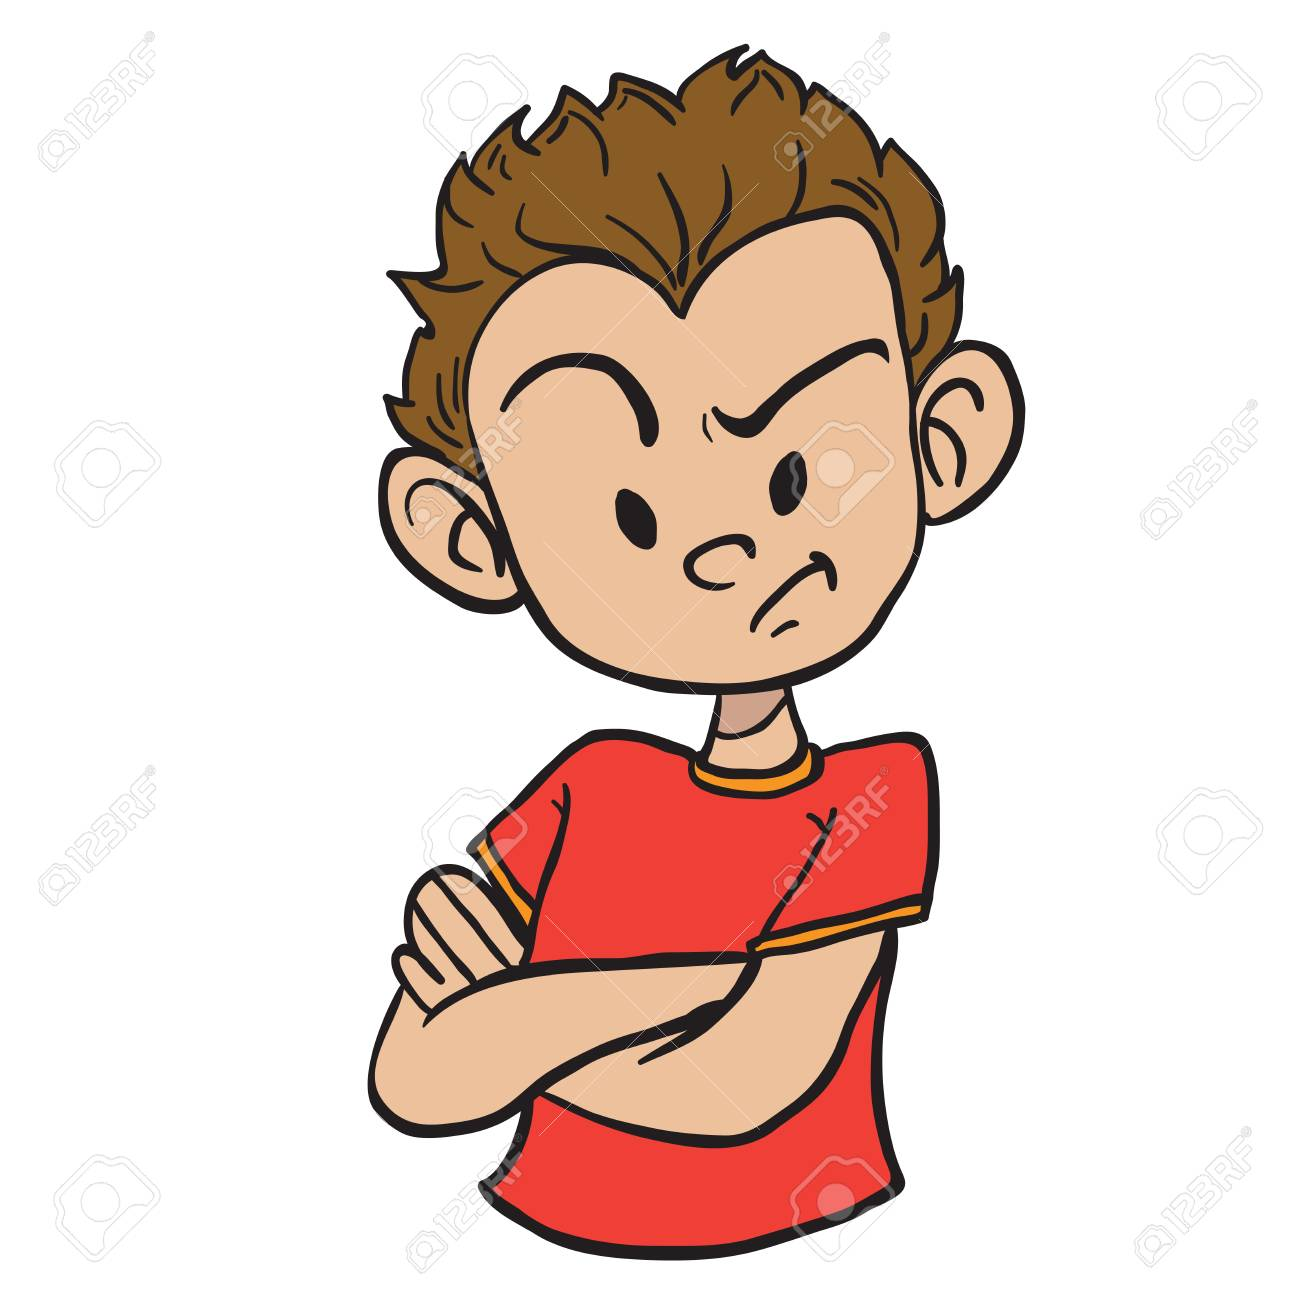 Angry boy with crossed arms cartoon illustration isolated on...